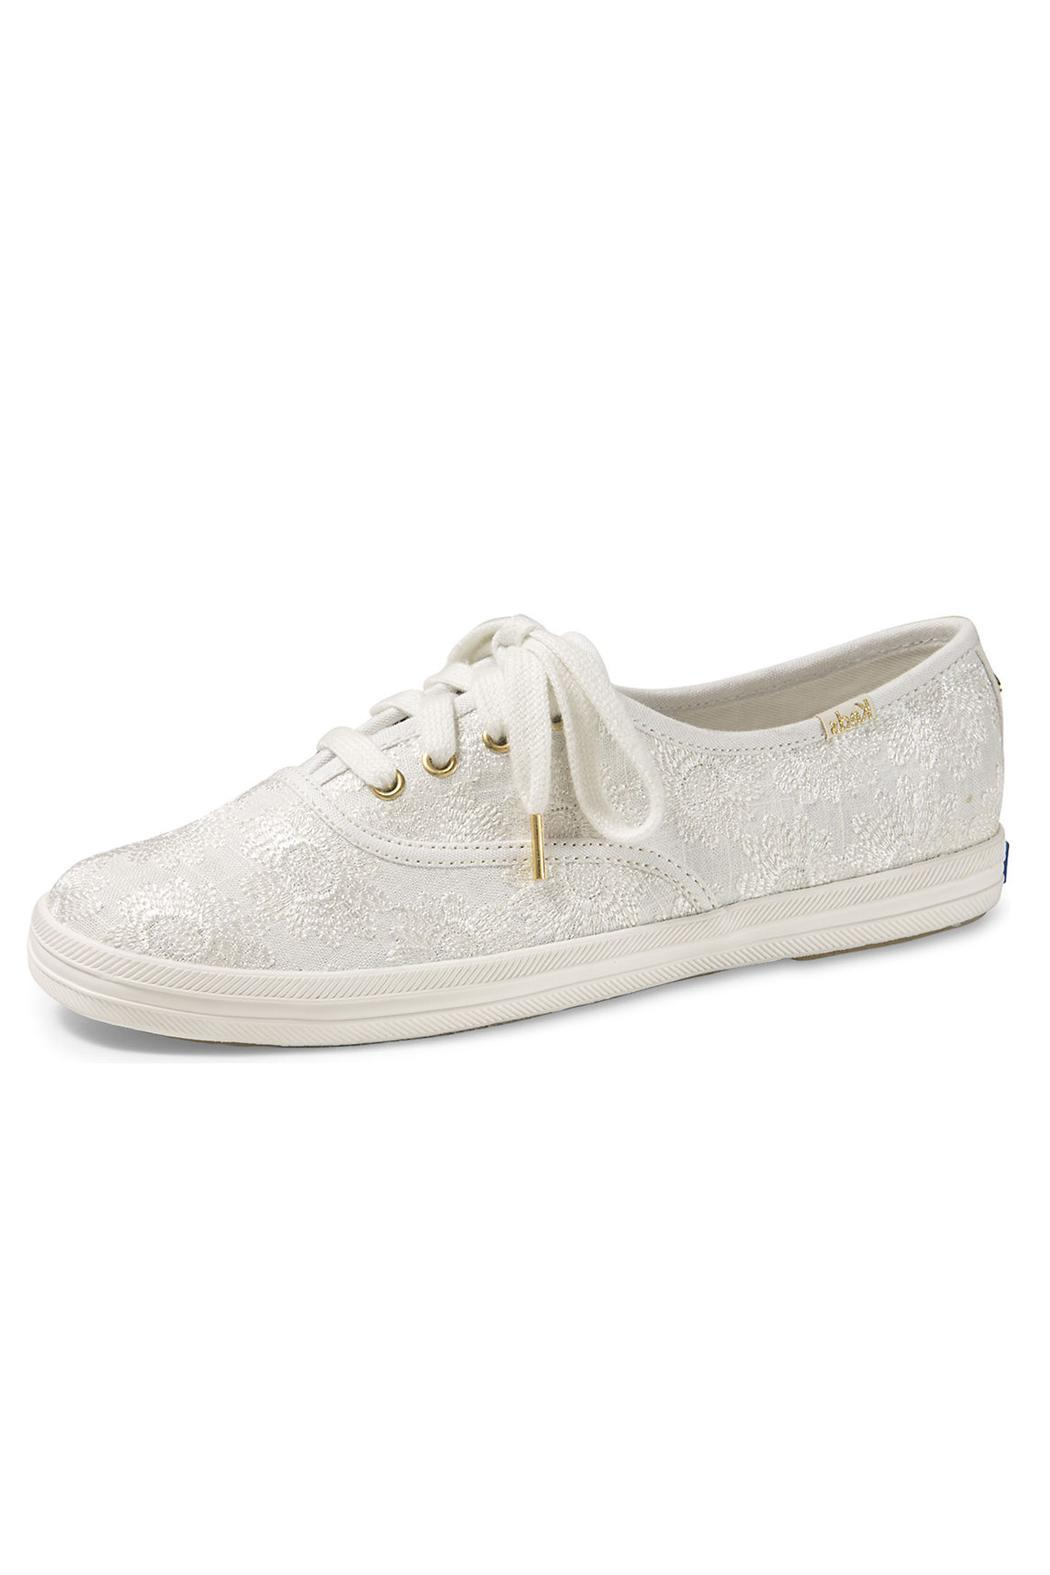 e56ed8c119e9 Keds Champion Daisy Embroidery from Canada by Starlet — Shoptiques